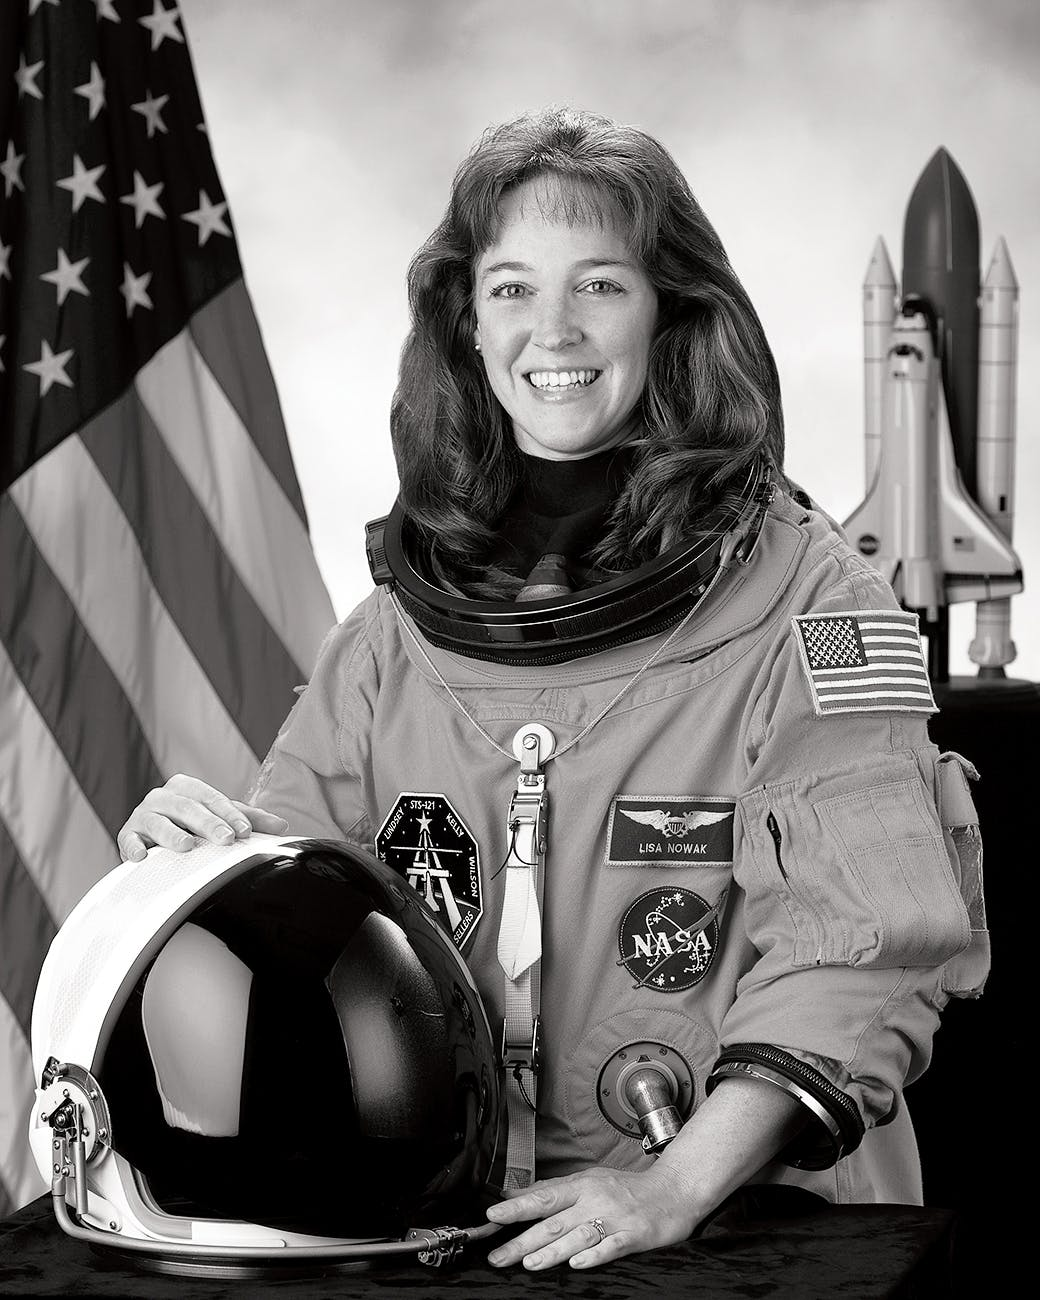 Nowak's official NASA portrait.